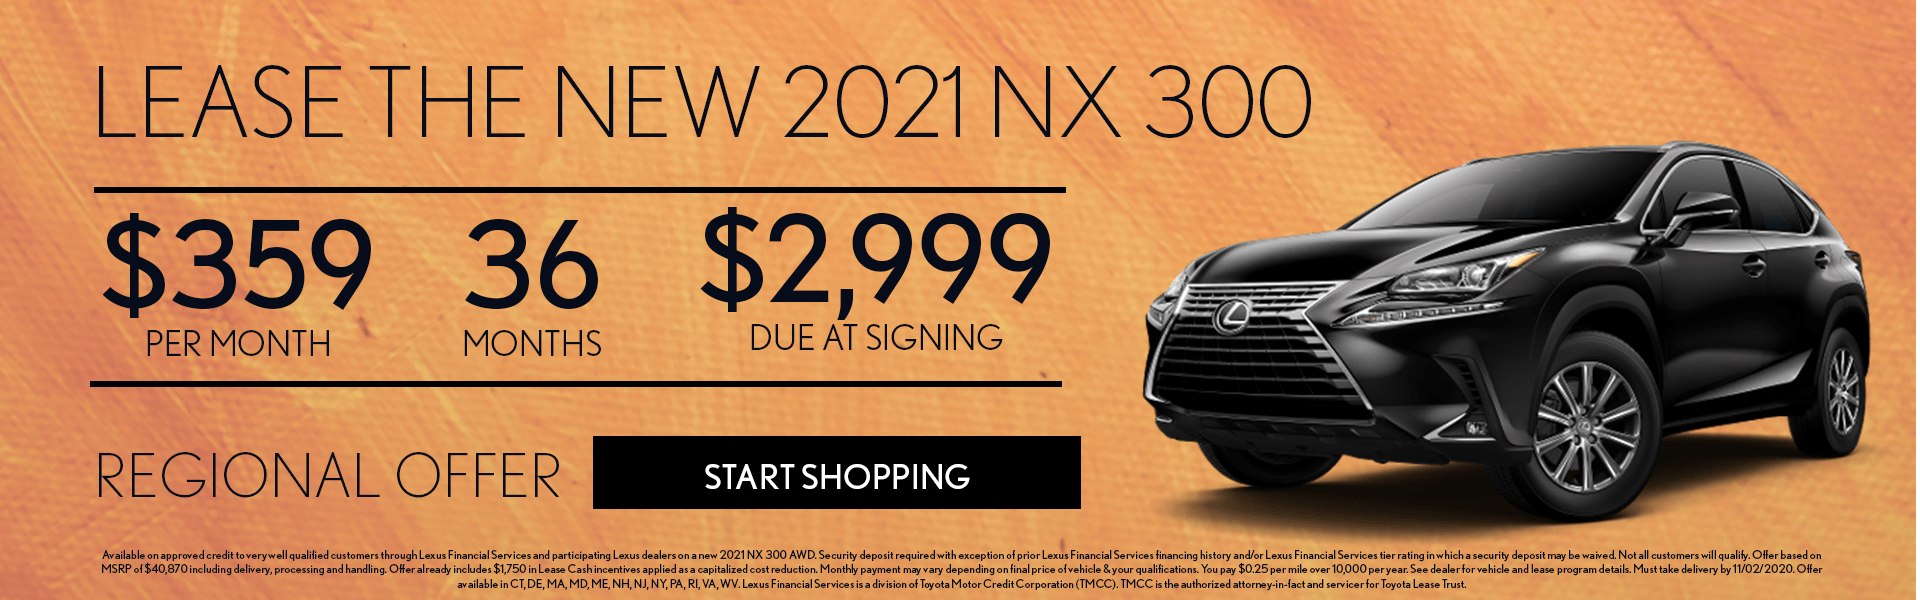 2021 Lexus NX Lease Offer